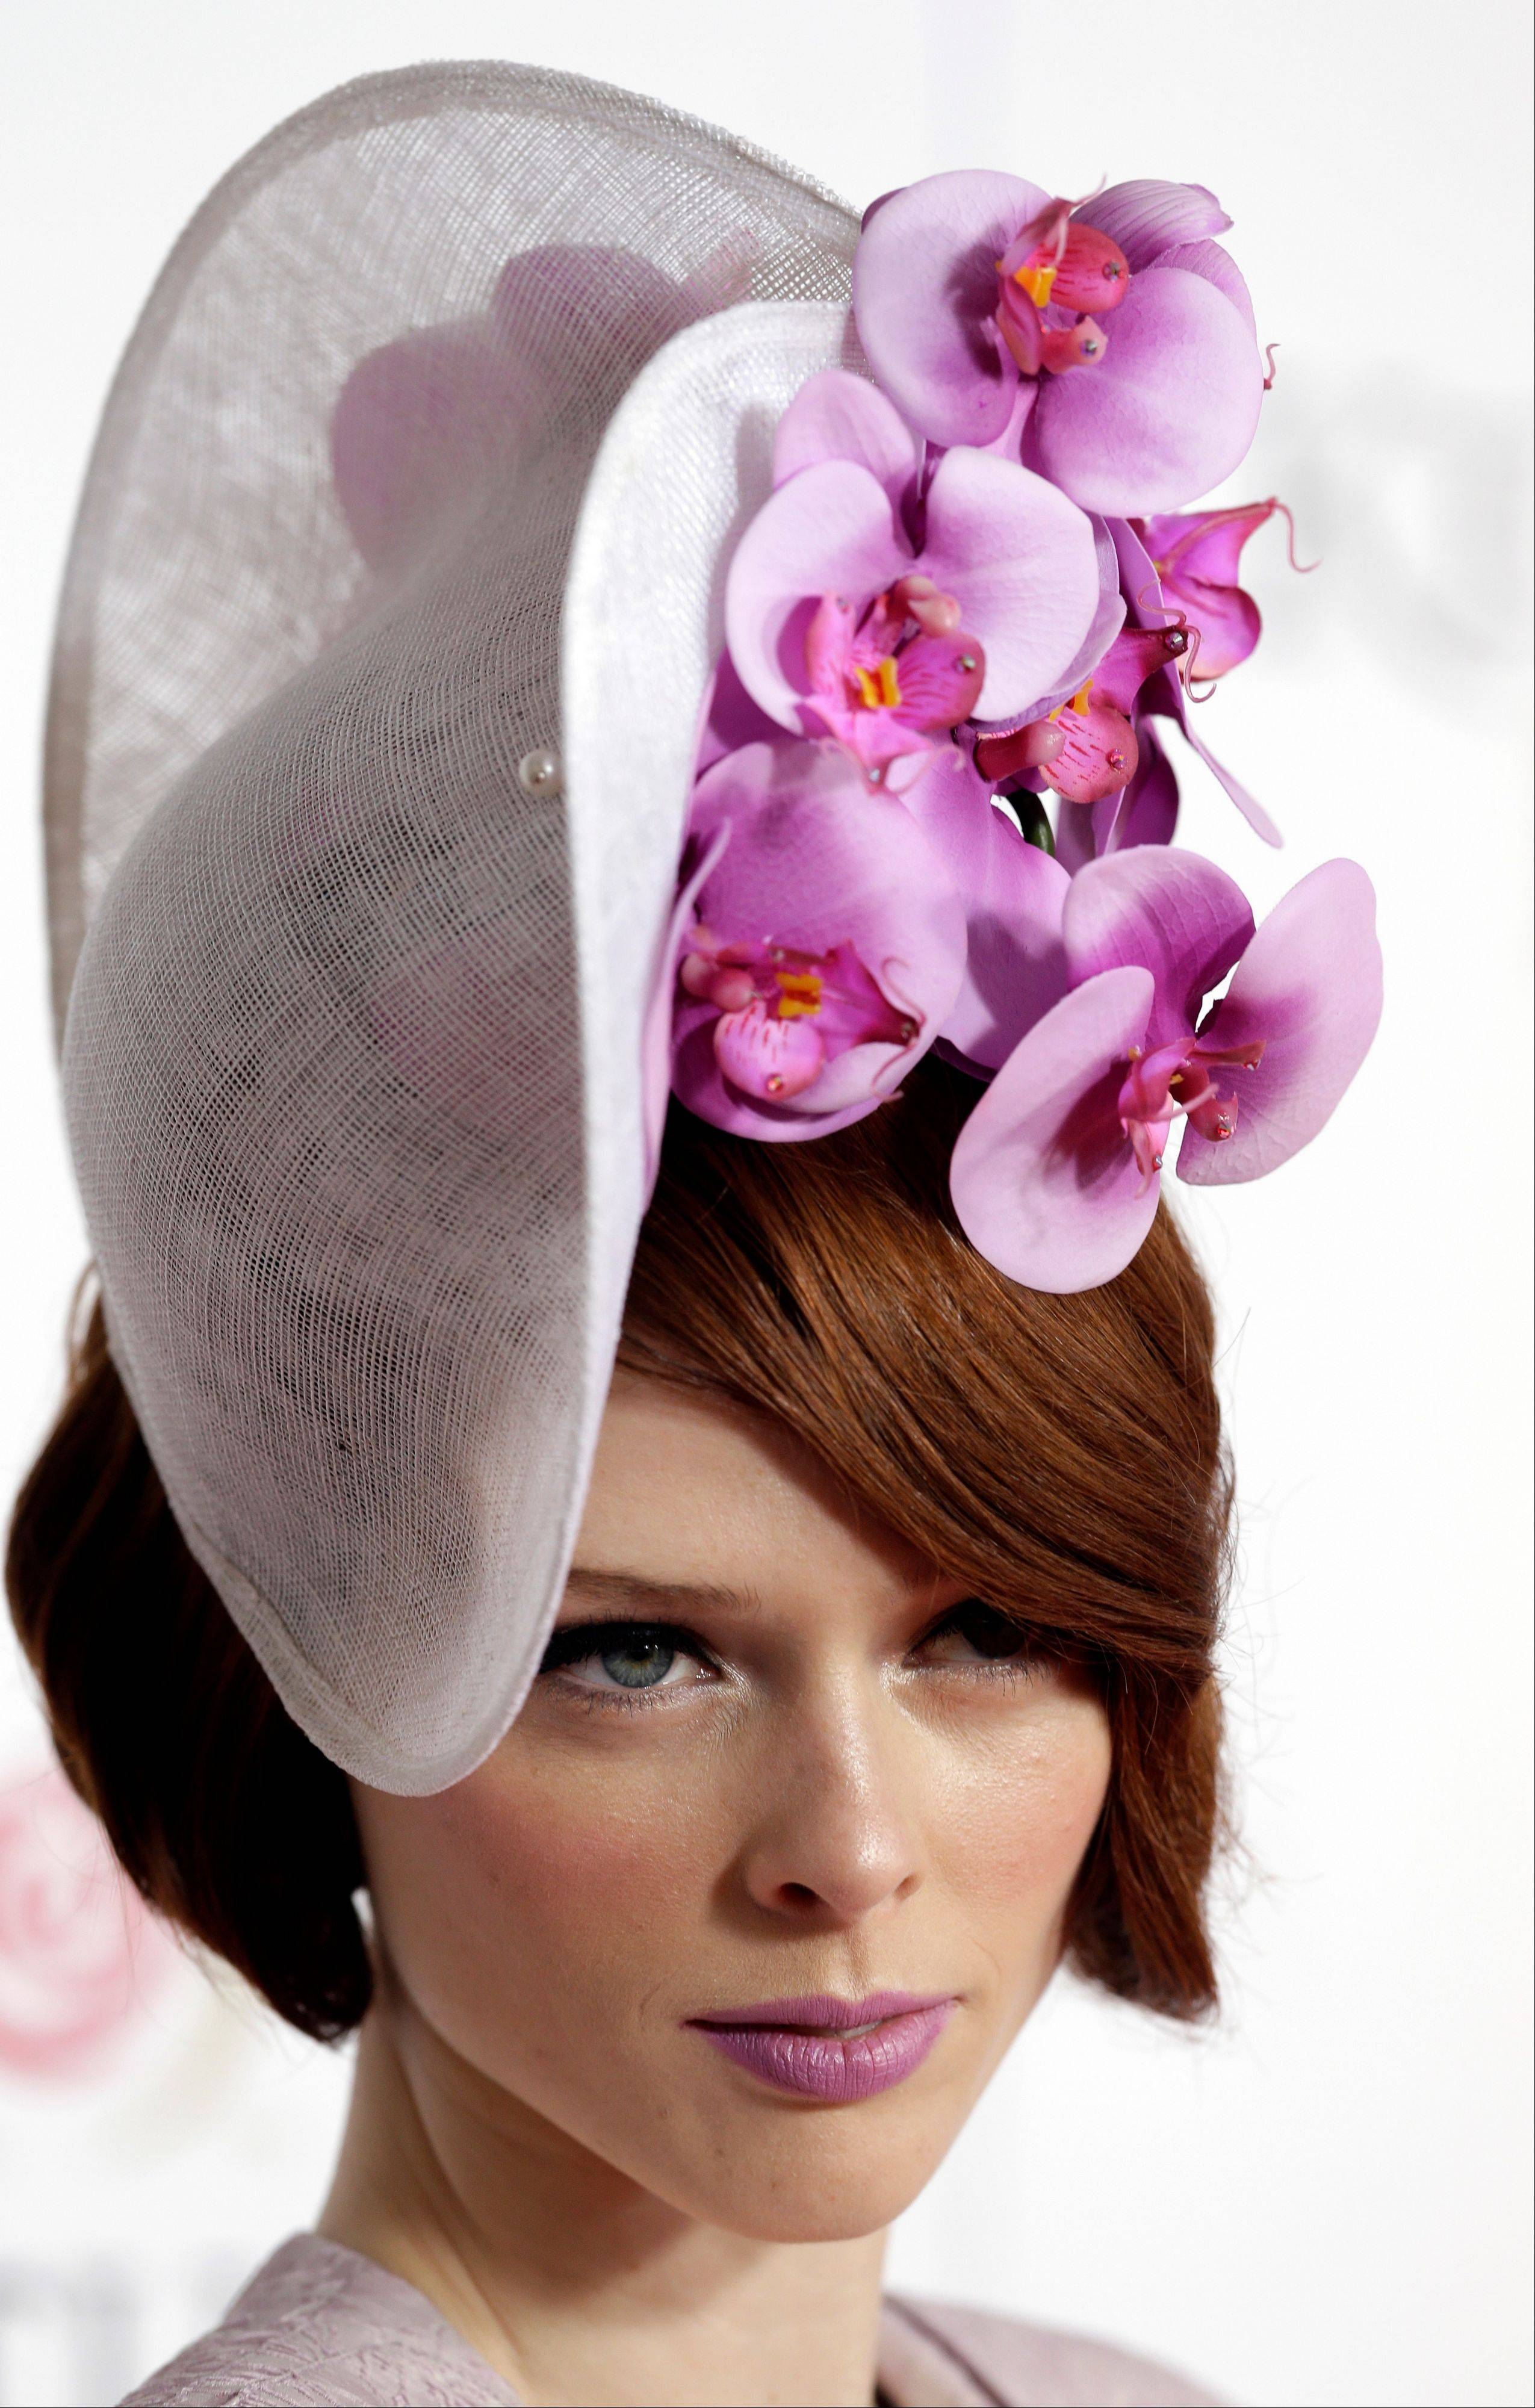 Model Coco Rocha arrives to attend the 139th Kentucky Derby at Churchill Downs Saturday.